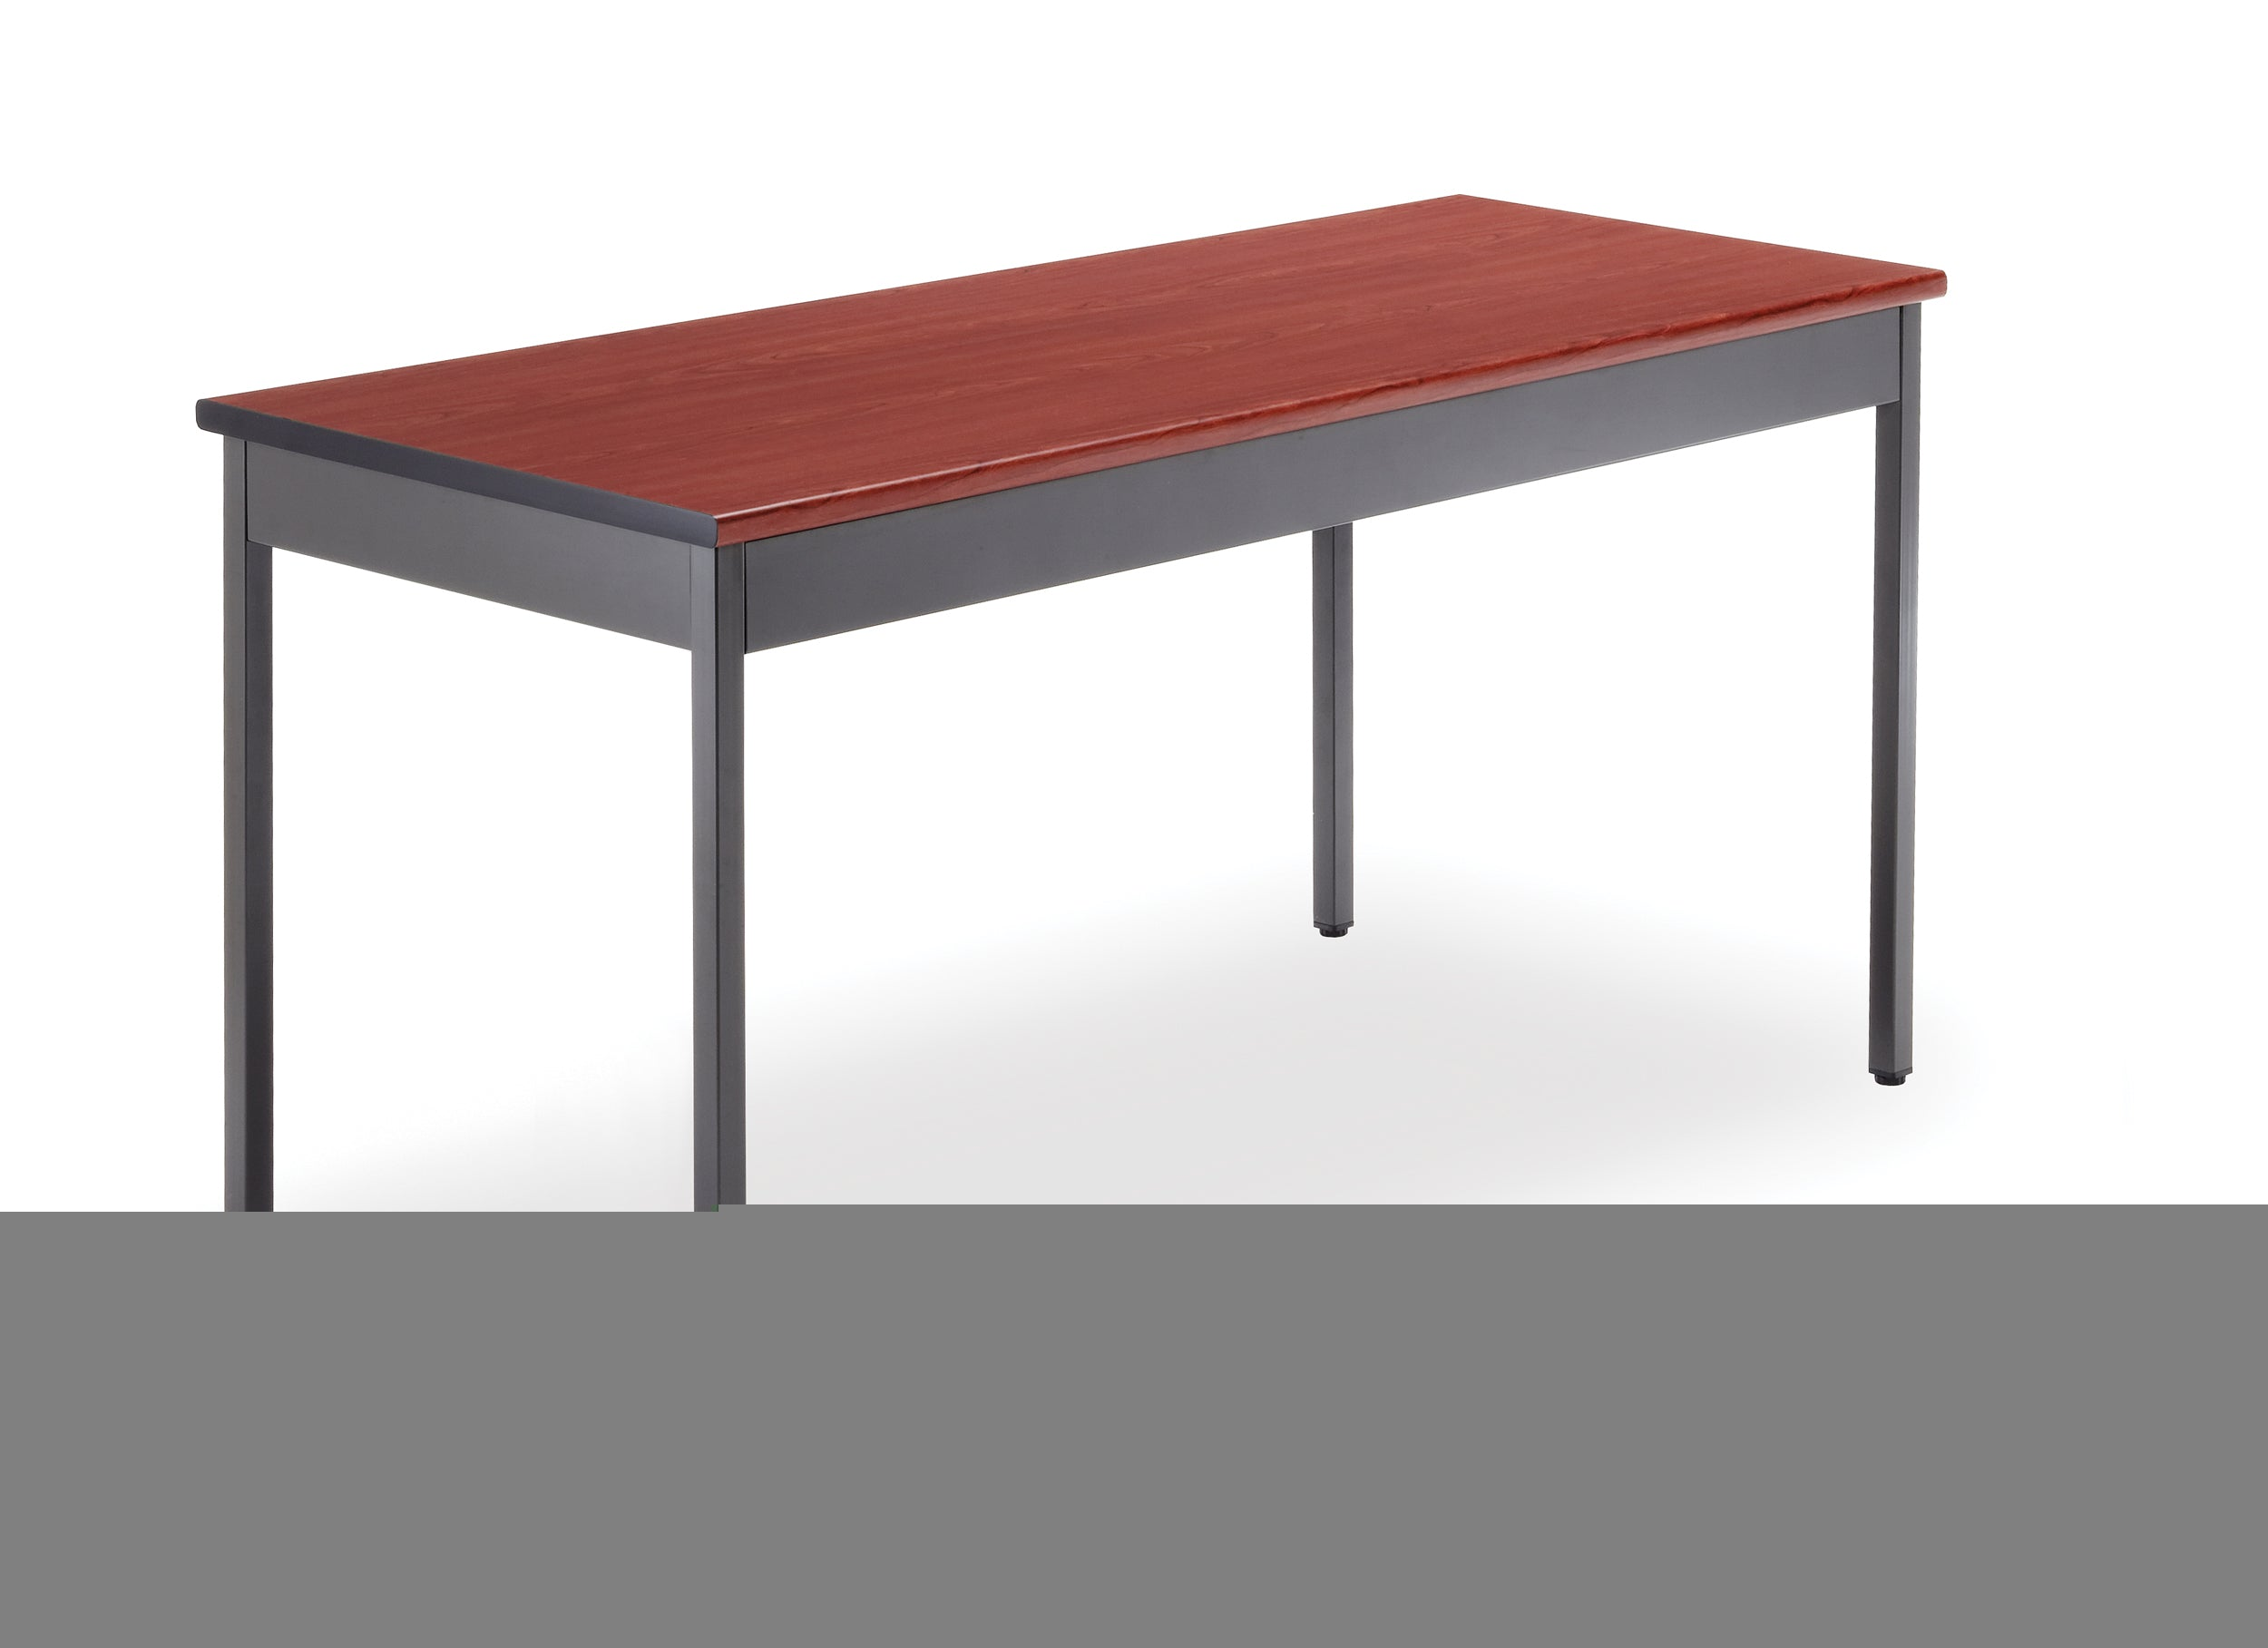 Ofminc Model UT2460 Steel 60 Inch Utility Table / Desk